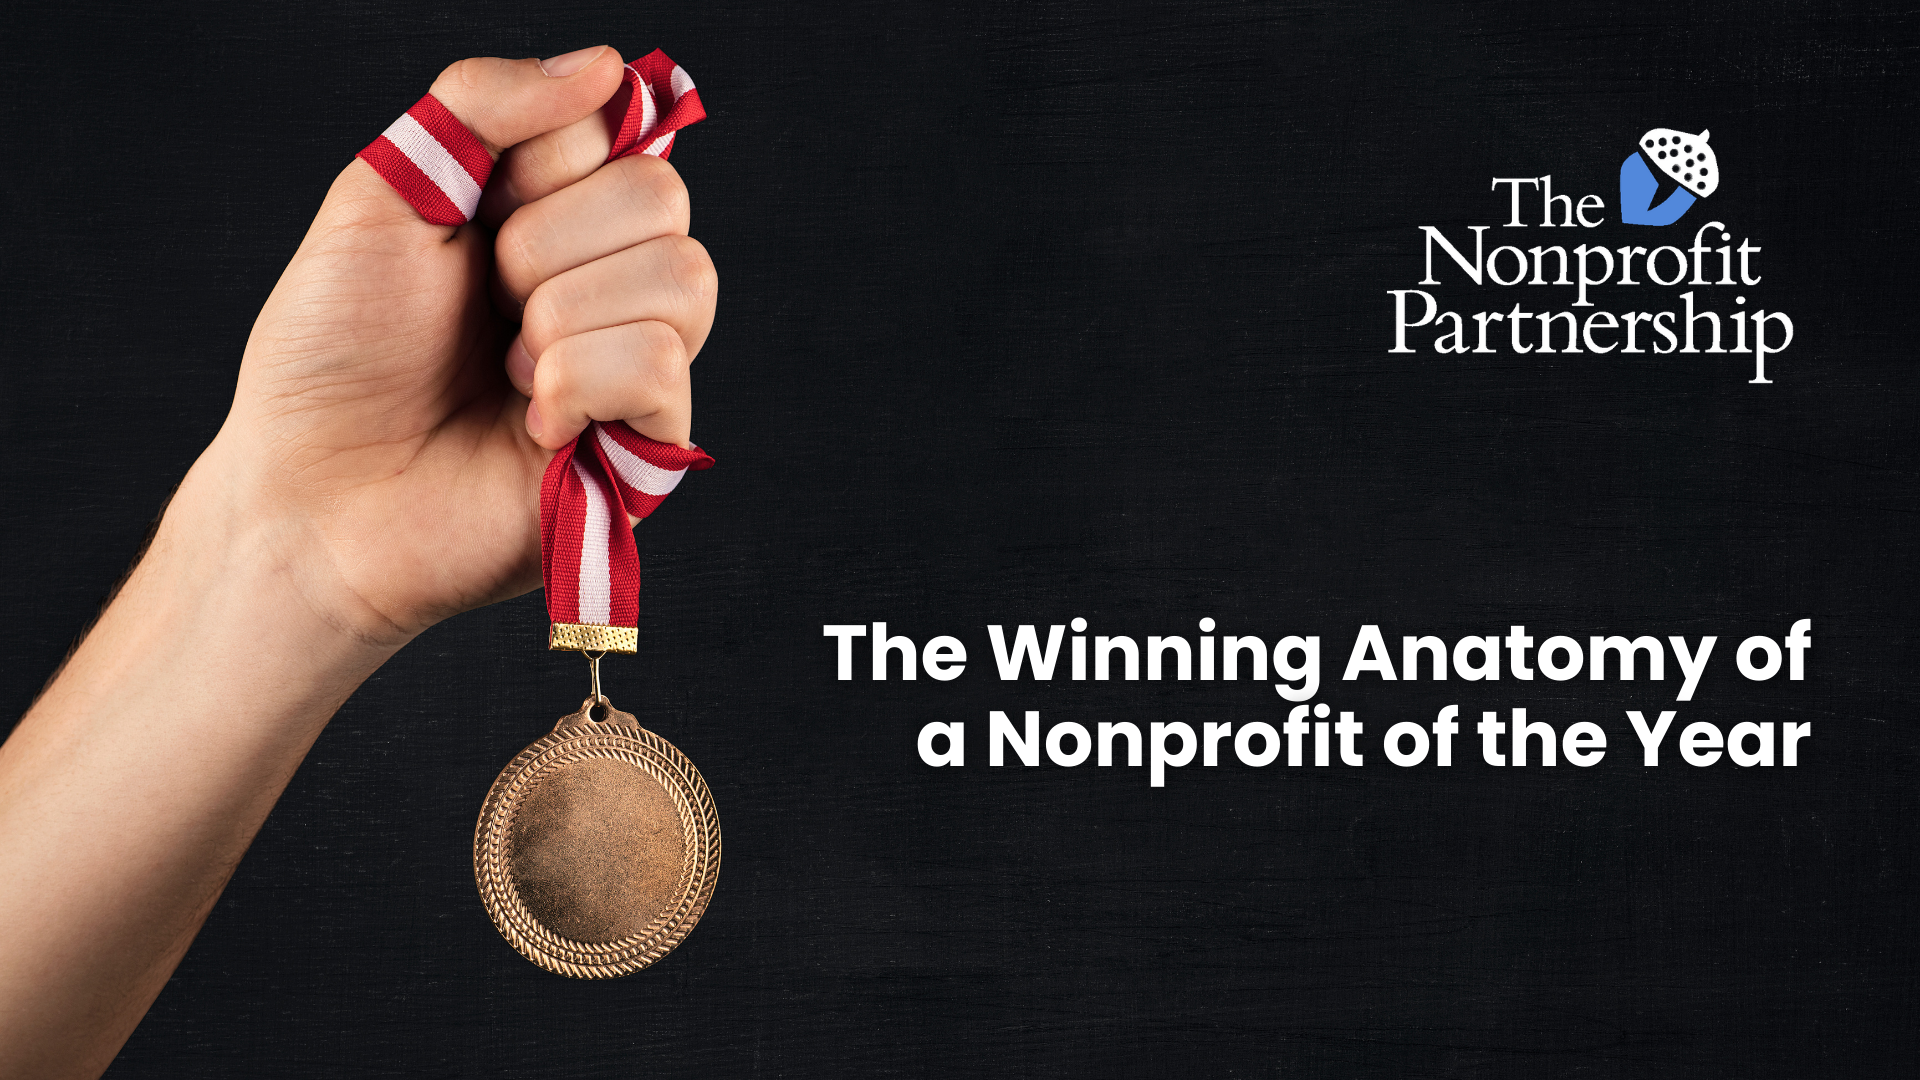 [Zoom Meeting] The Winning Anatomy of a Nonprofit of the Year